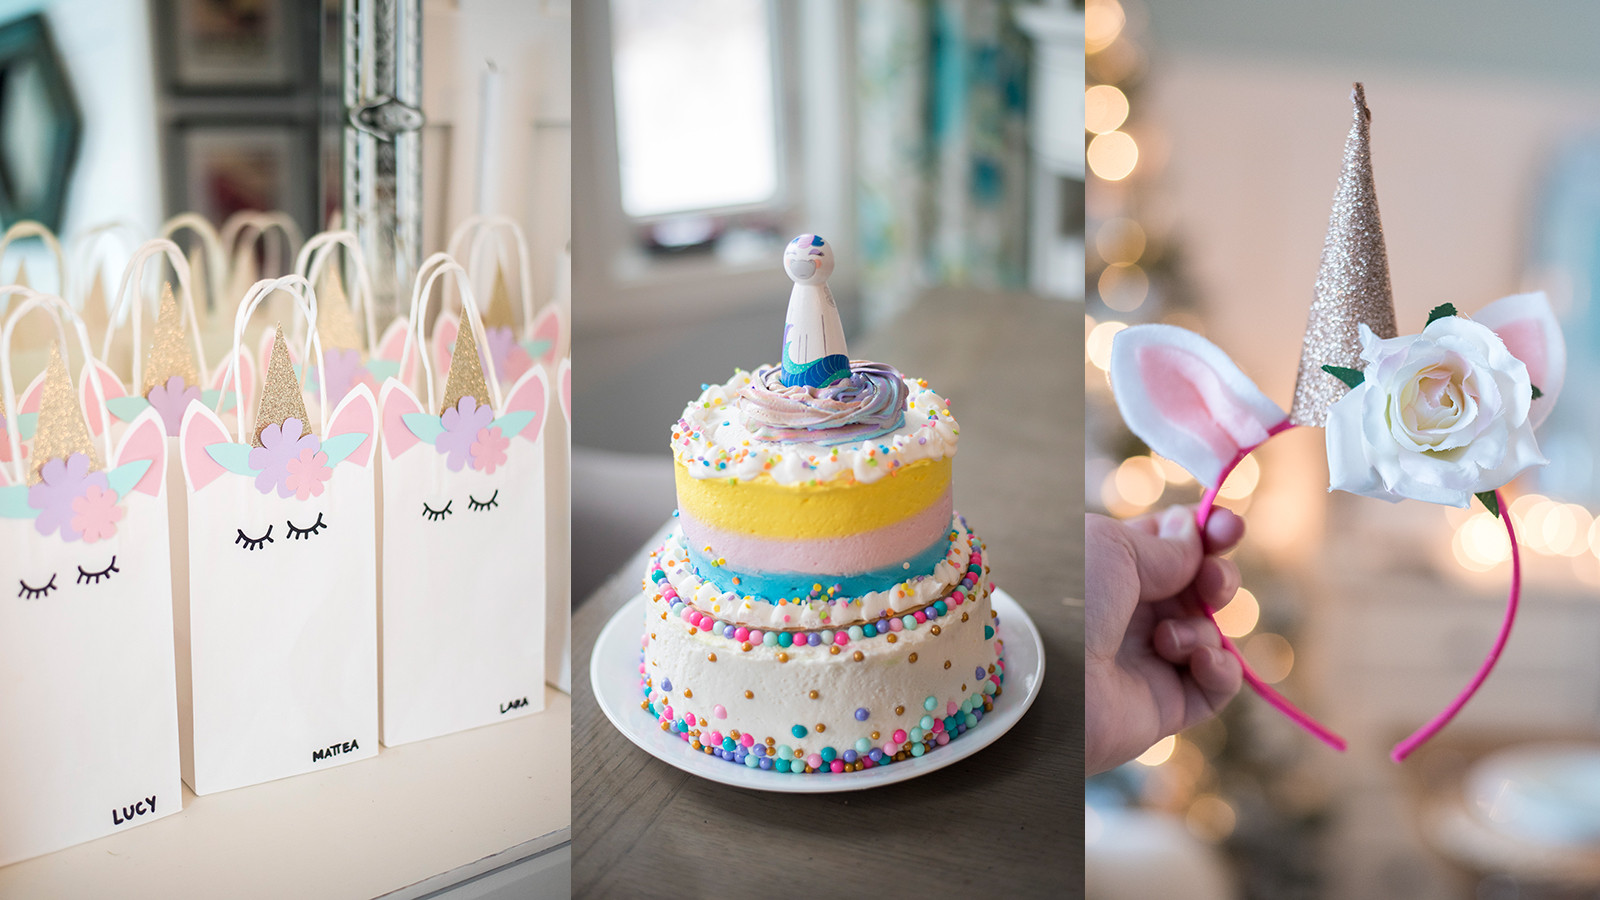 Best ideas about Diy Birthday Decor . Save or Pin DIY Unicorn Party Ideas Now.